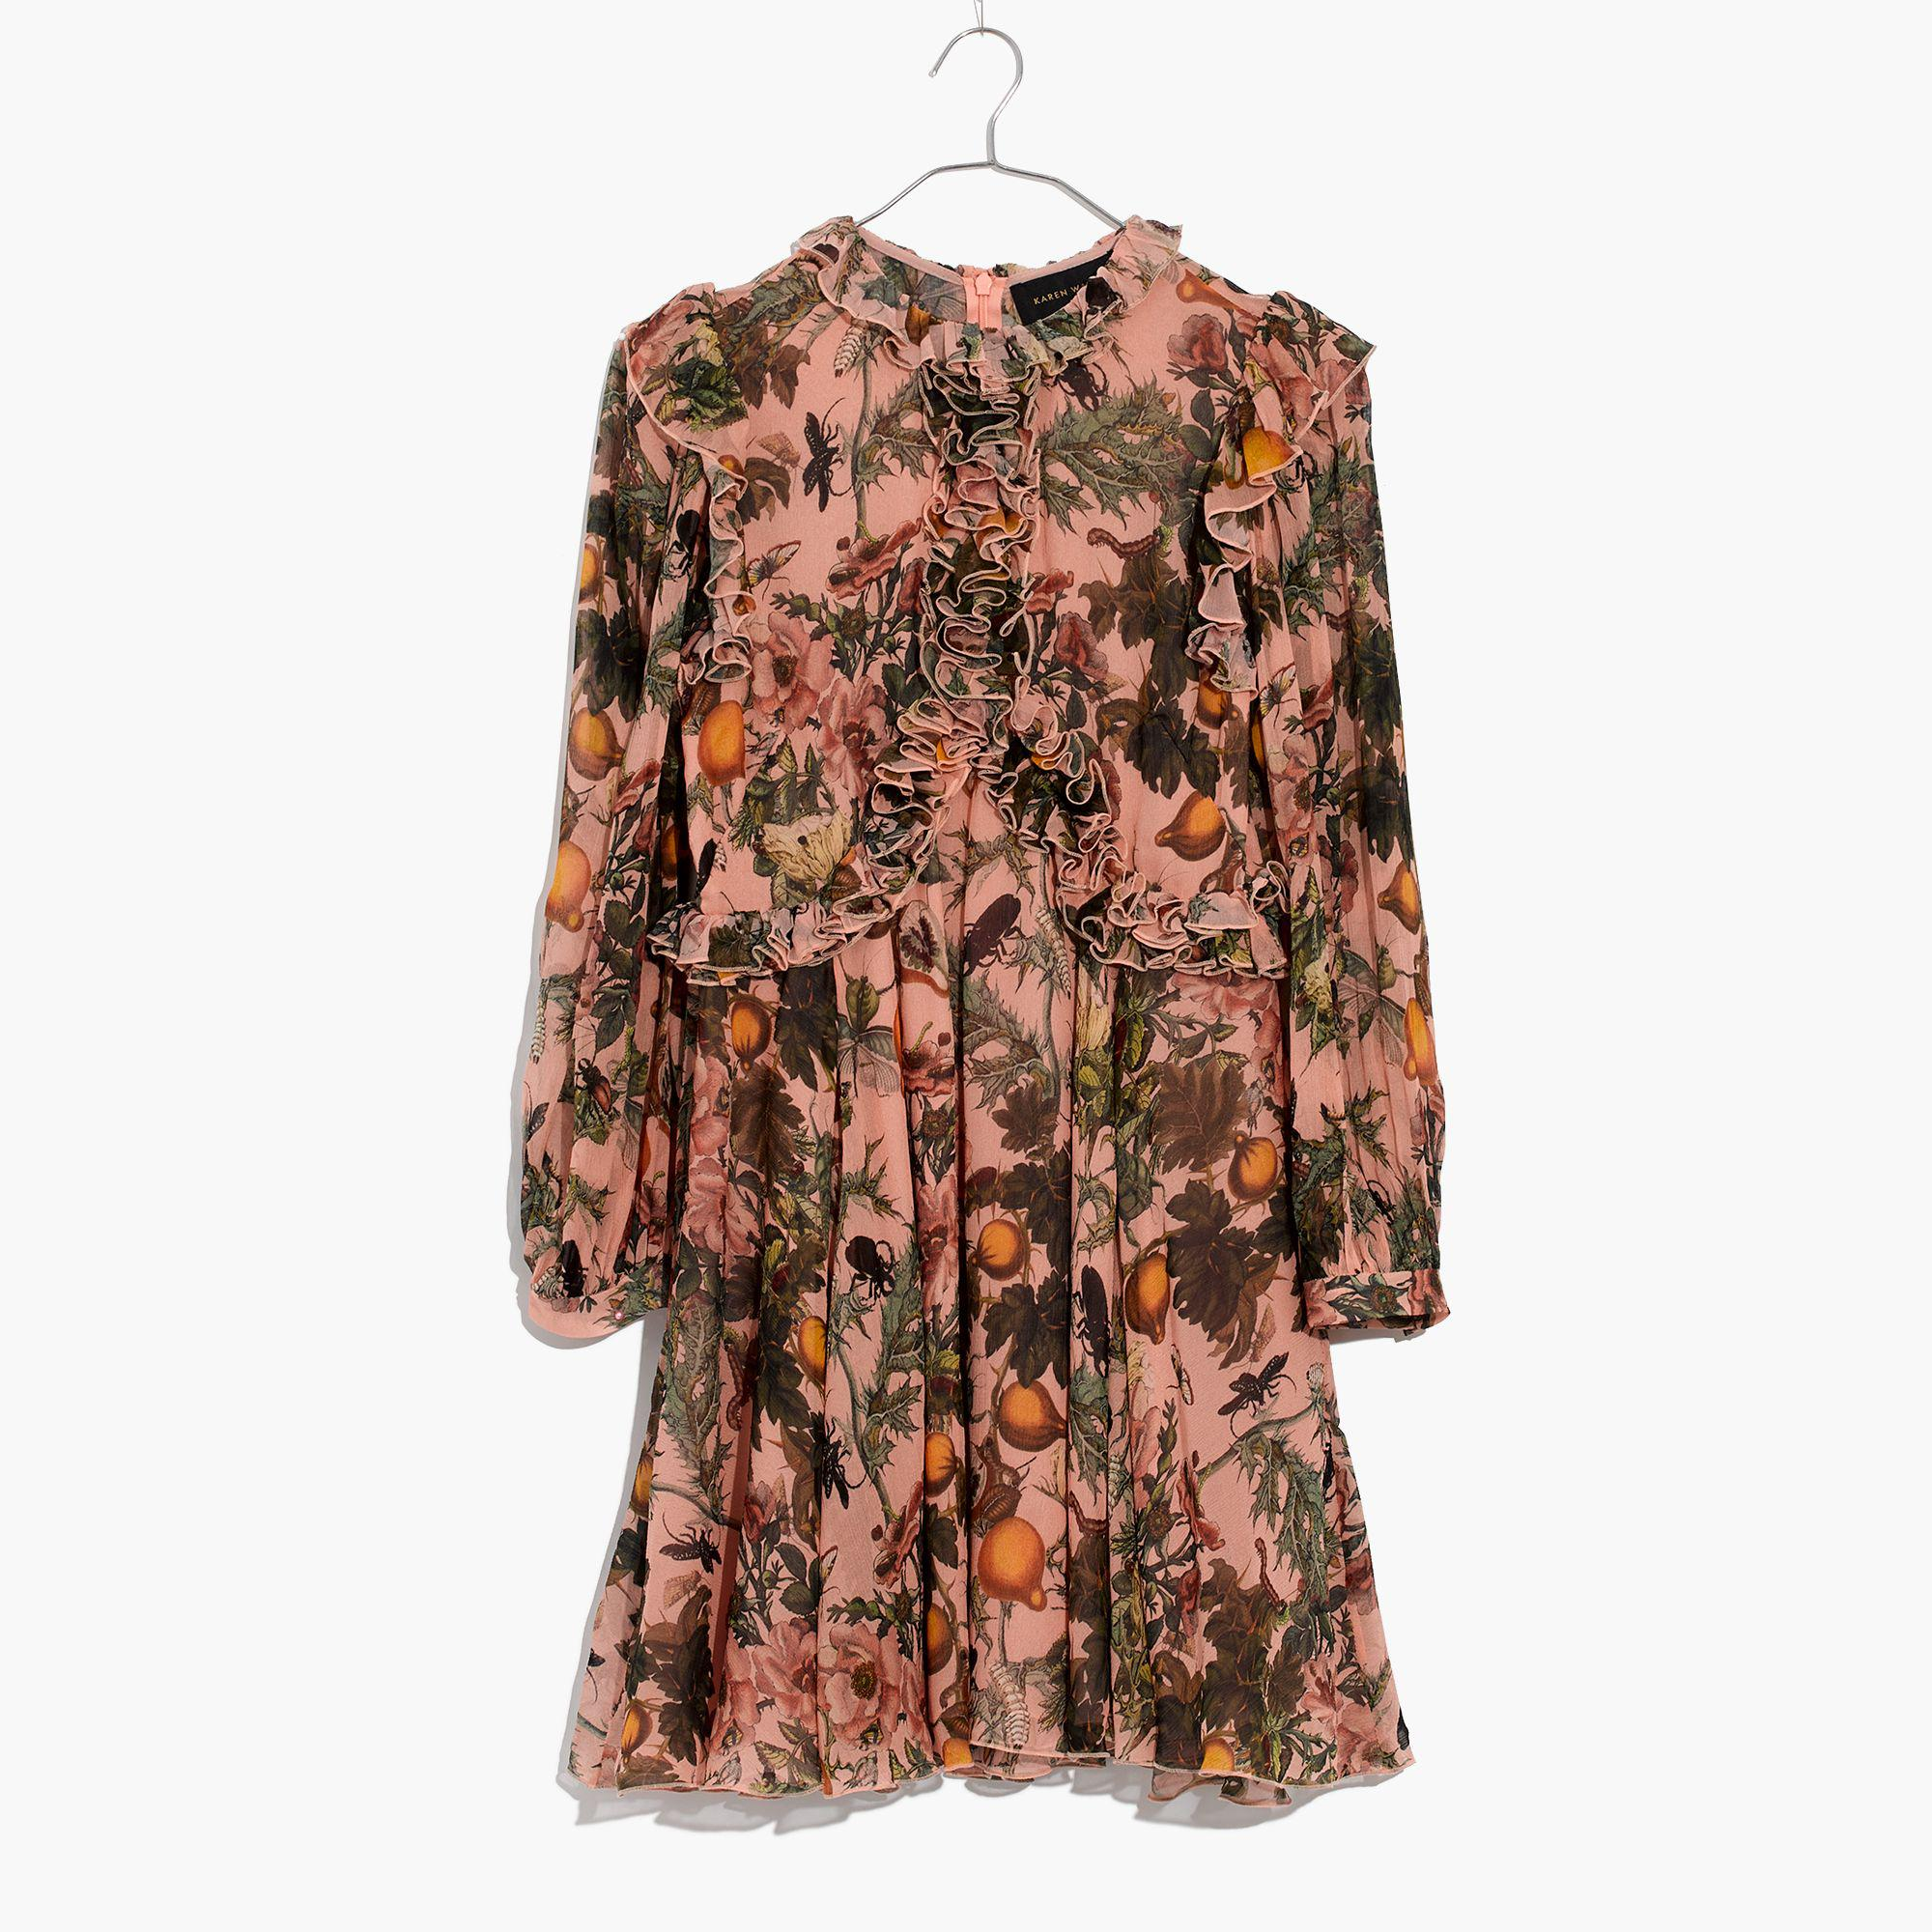 5b5ccdf46de Madewell Karen Walker® Fantasy Ruffled Print Dress in Brown - Lyst